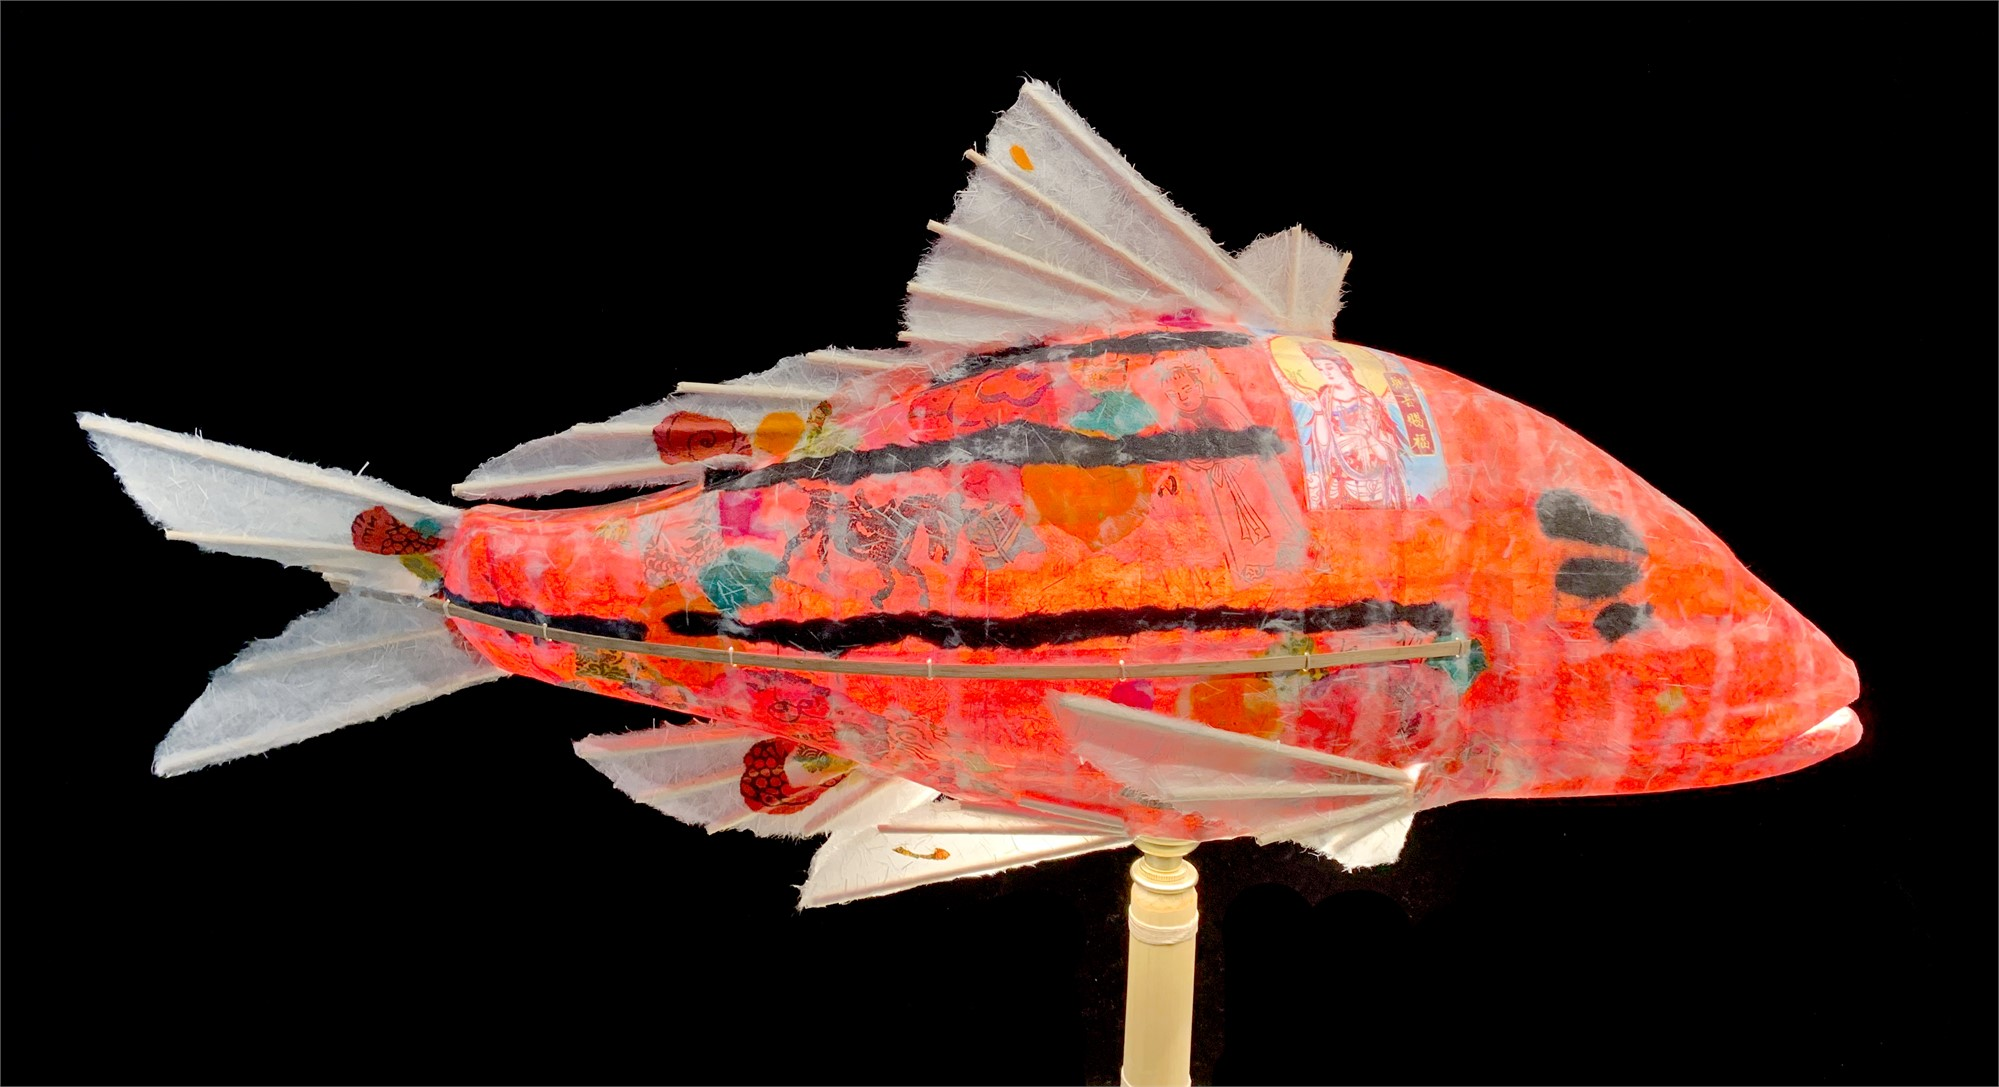 Red Striped Bass by Elaine Hanowell